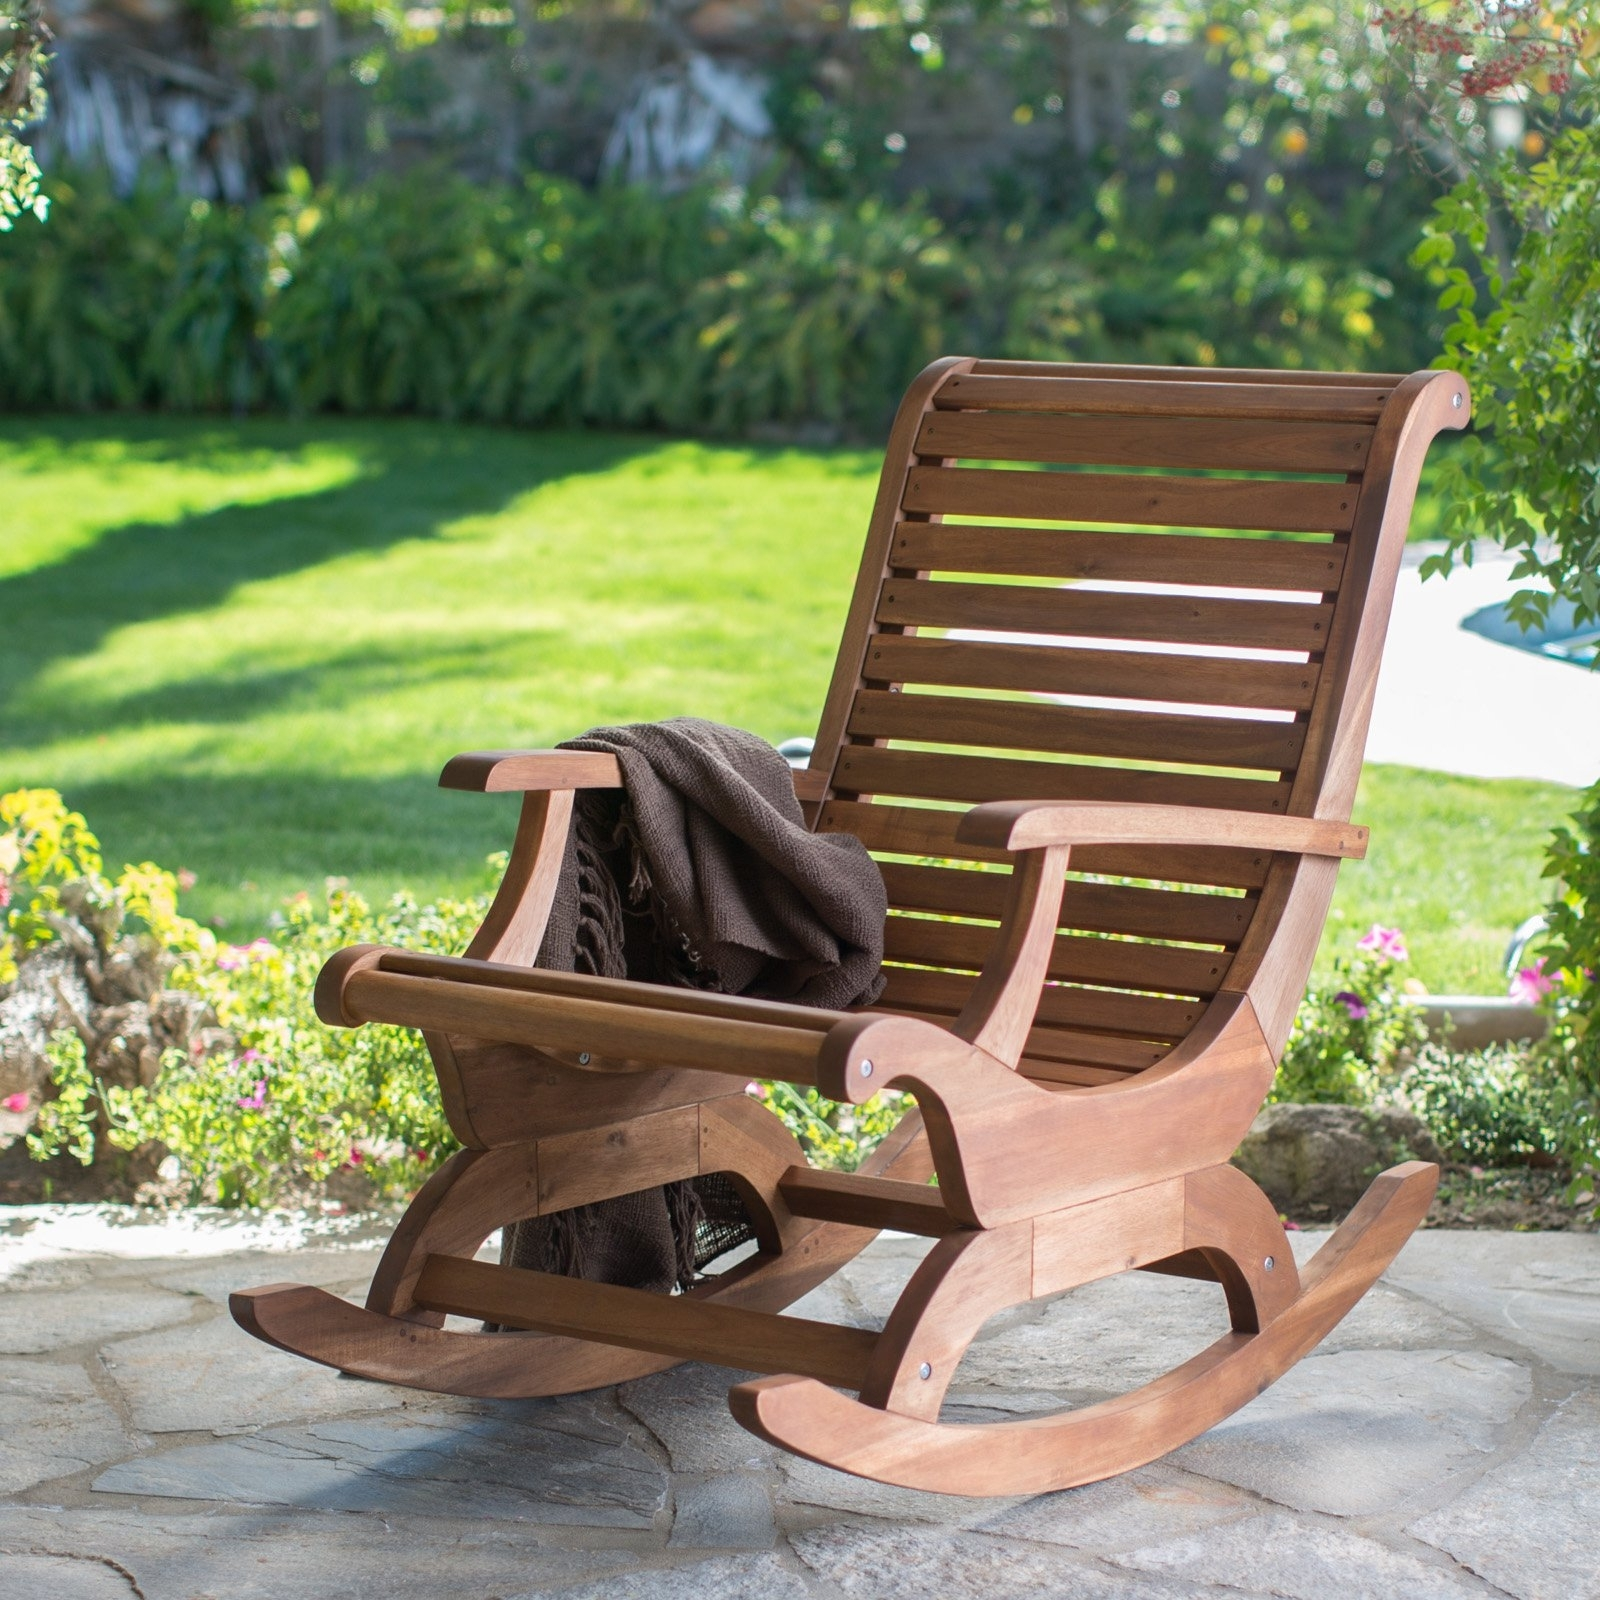 Popular Oversized Patio Rocking Chairs In Belham Living Avondale Oversized Outdoor Rocking Chair – Natural (View 11 of 15)